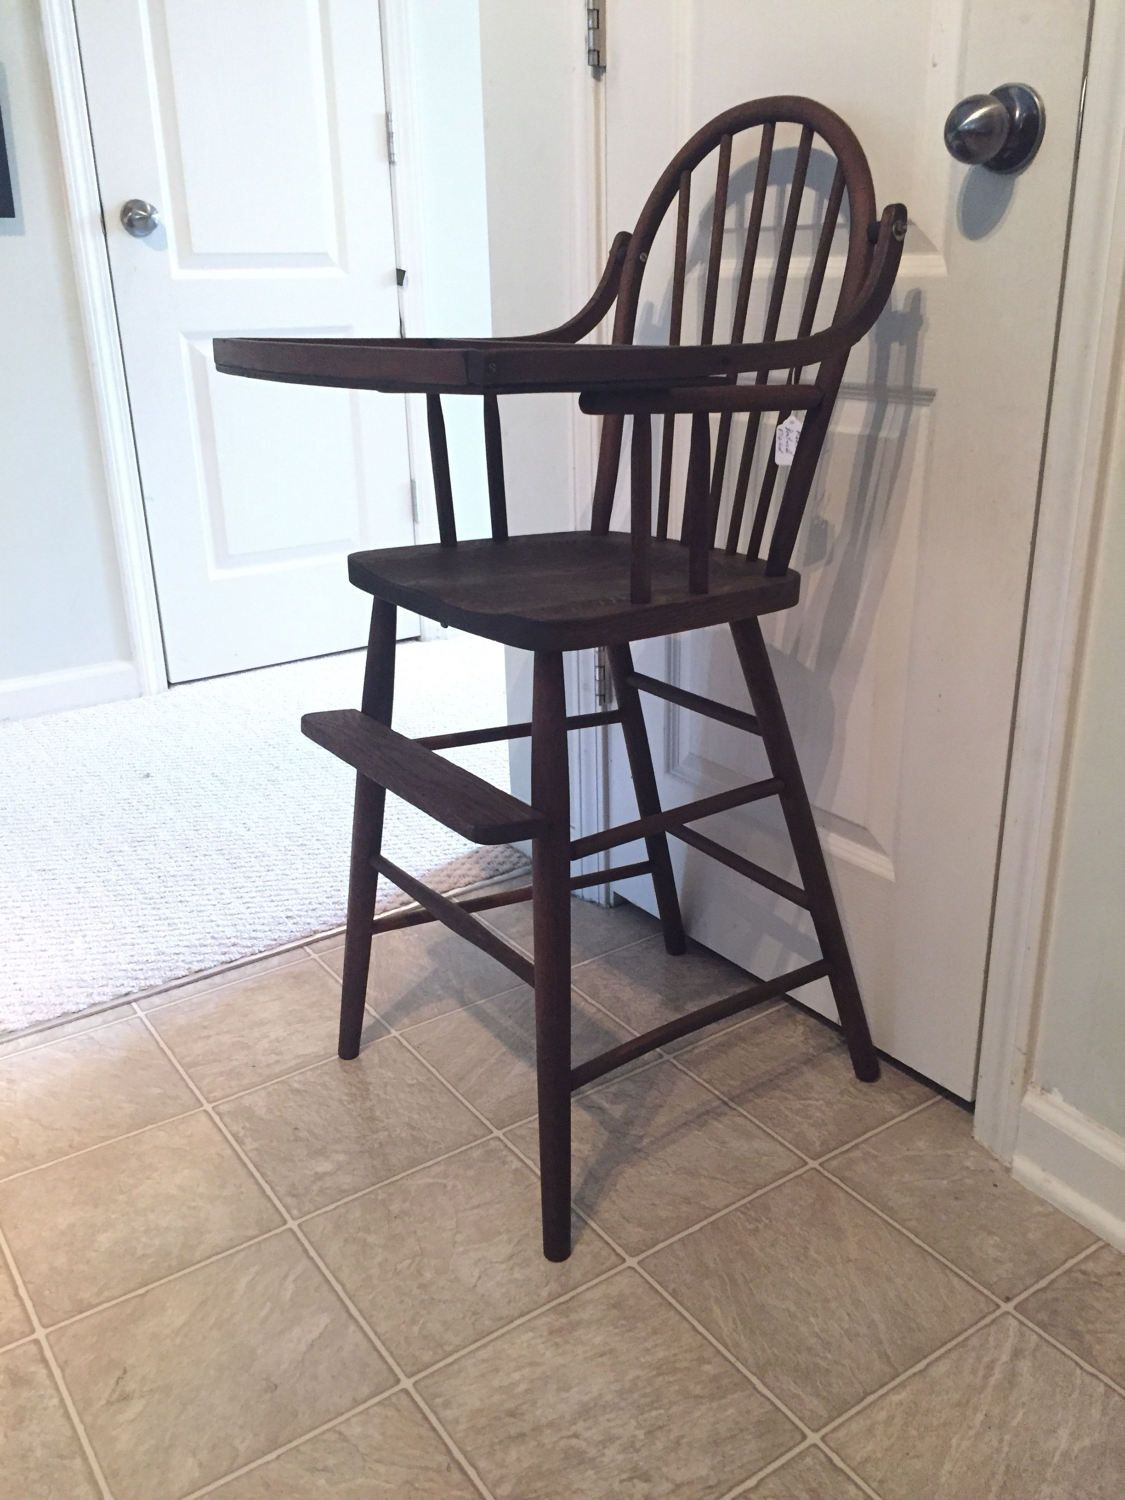 Vintage wooden high chair - Late 1800 S High Chair Vintage Wooden High Chair Jenny Lind Antique High Chair